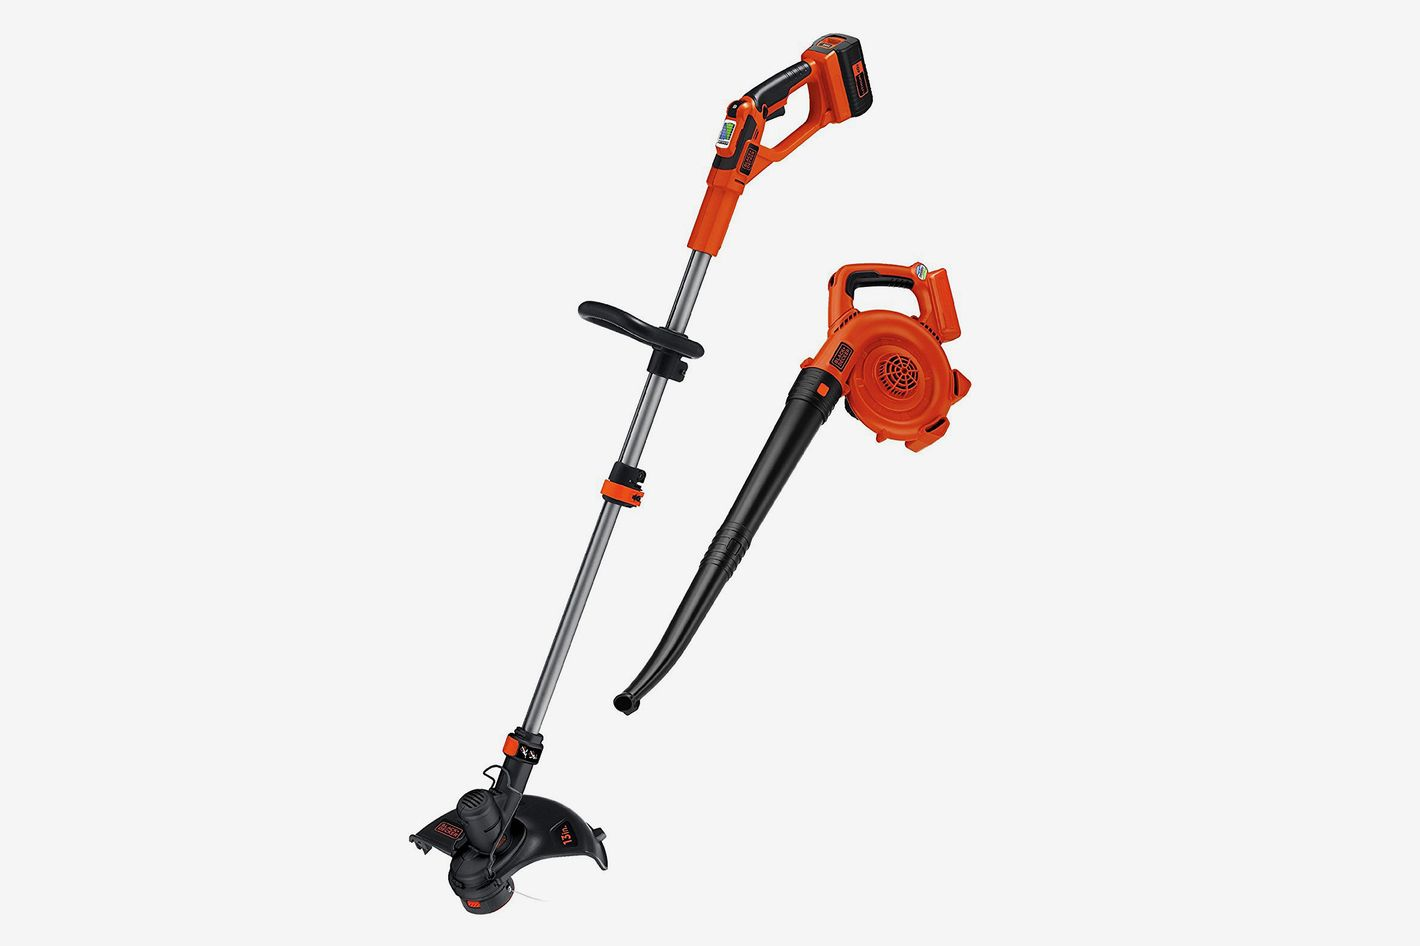 Black + Decker LCC140 40-volt Max String Trimmer and Sweeper